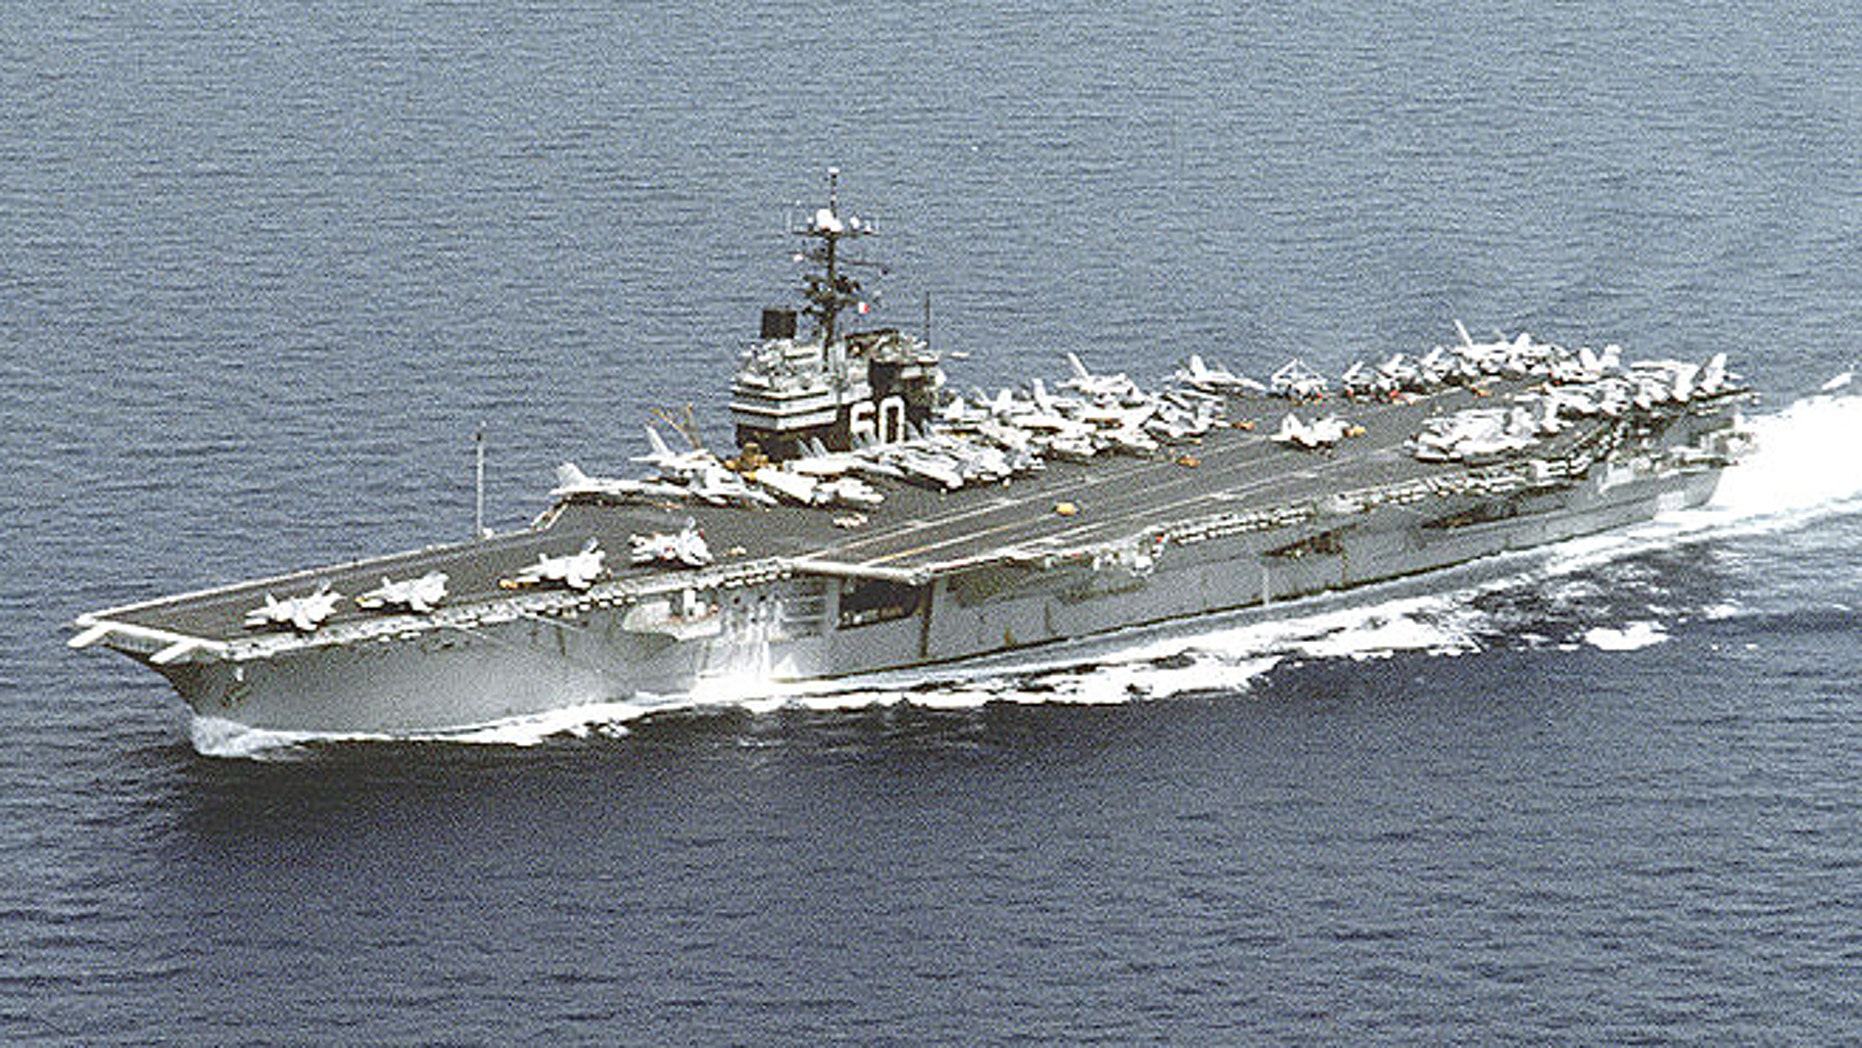 The ship, seen here in 1992, is currently berthed at the Naval Station Newport in Rhode Island and will depart for Texas later this summer. (Department of Defense)